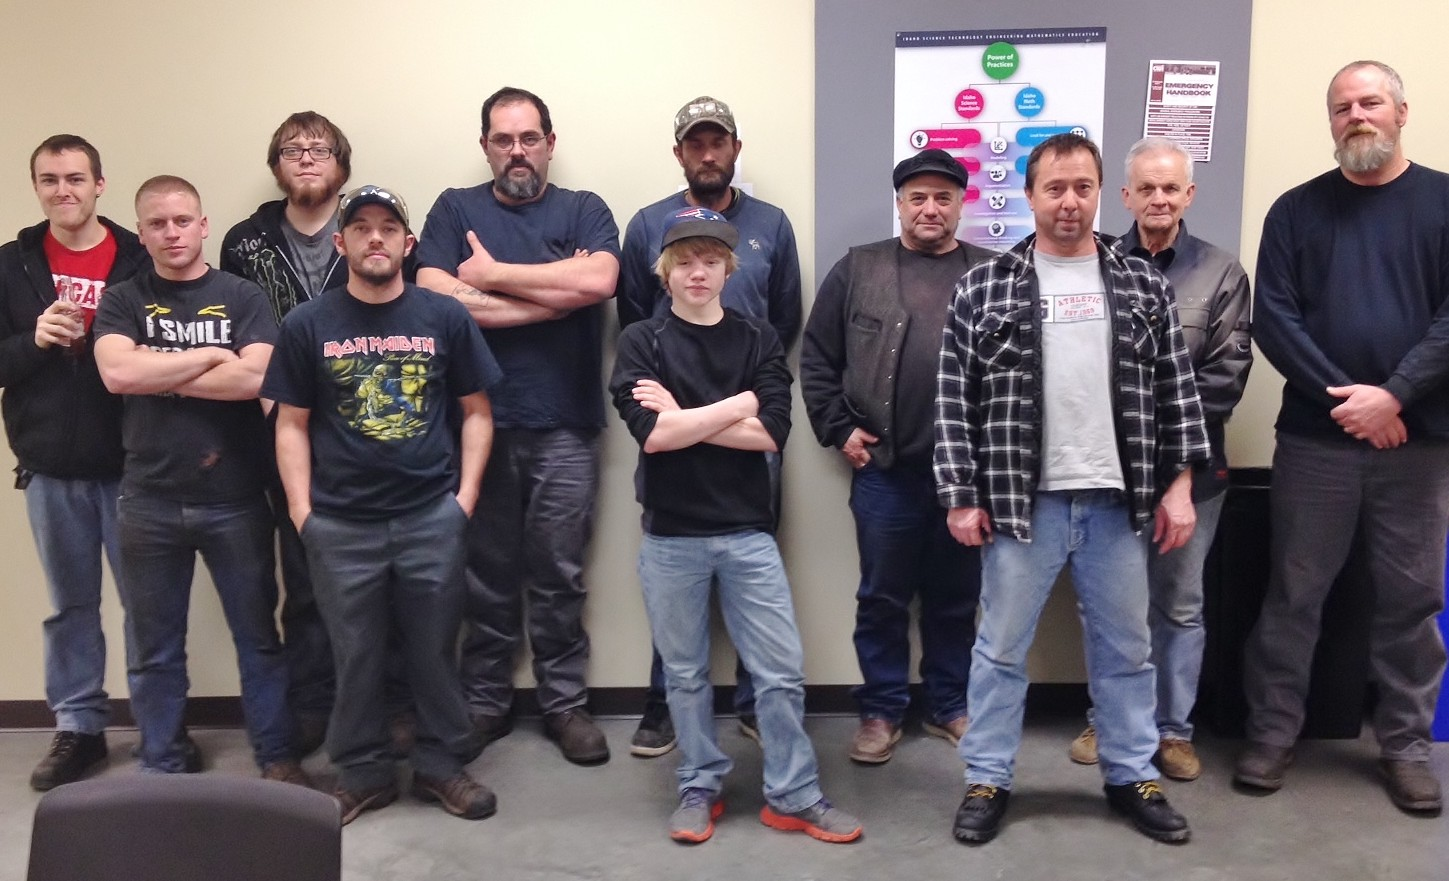 Title - Students from the first workplace welding class at CWI.